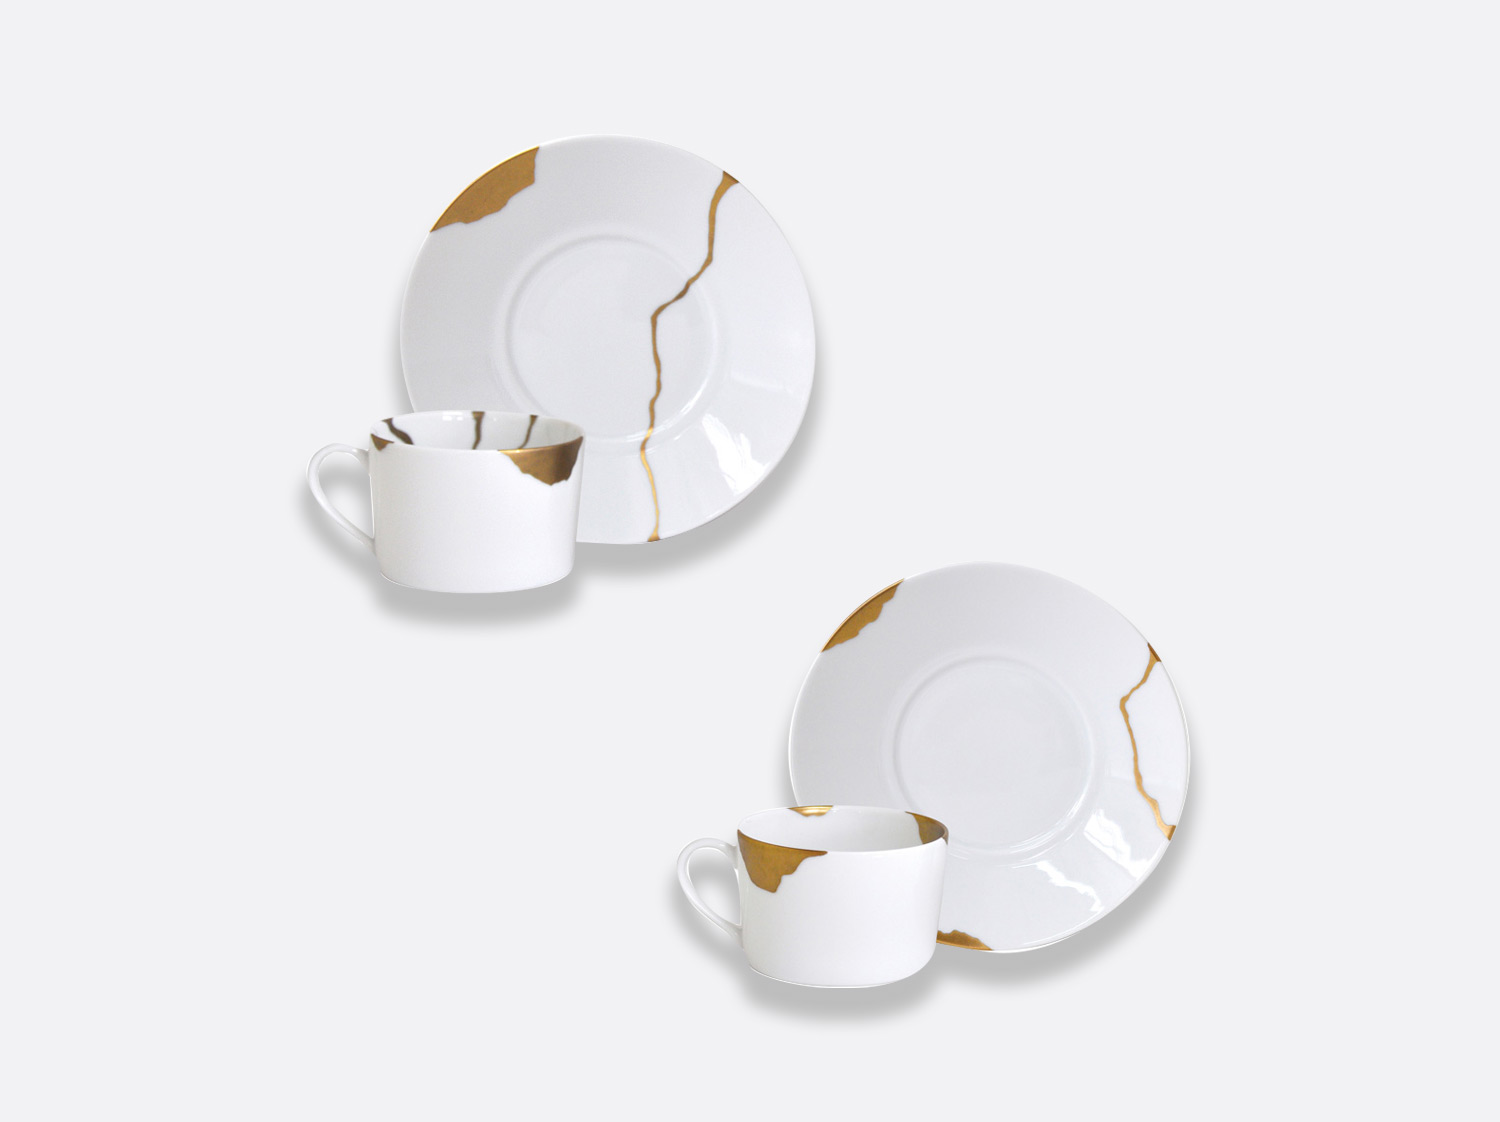 Coffret de 2 tasses et soucoupes déjeuner assorties en porcelaine de la collection Kintsugi Bernardaud